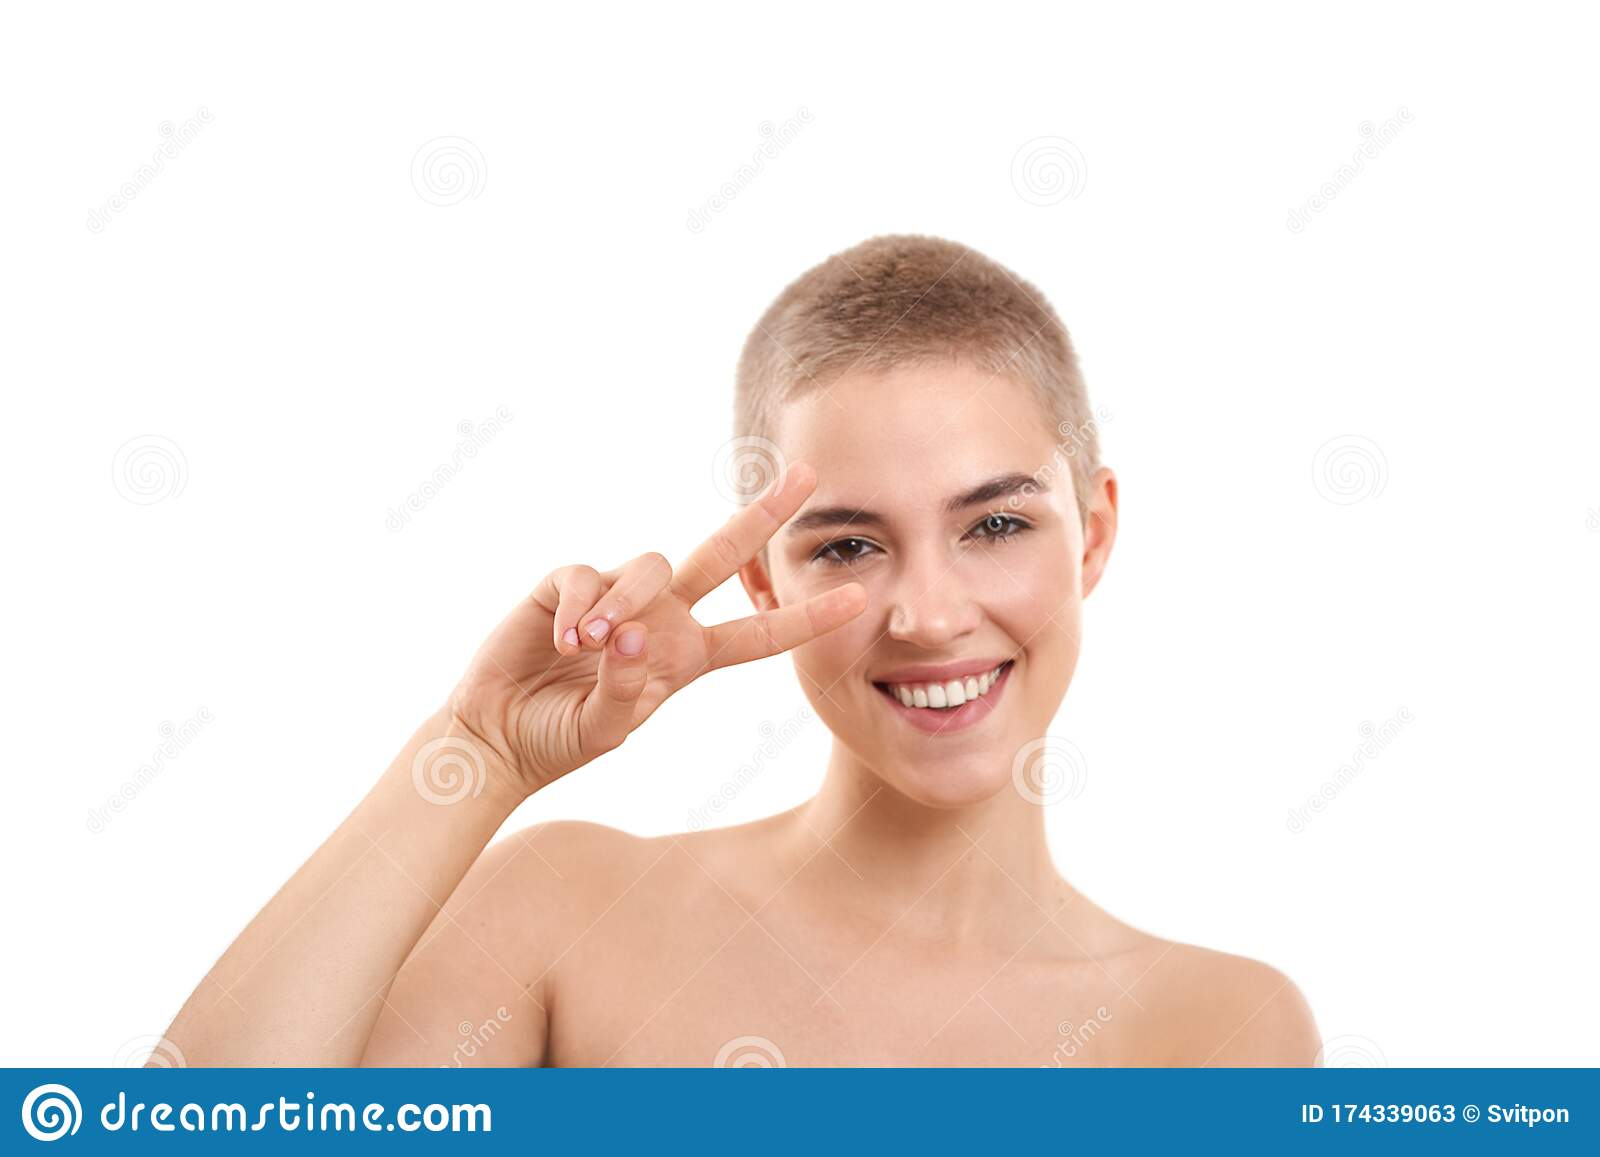 Nake sexy young girl 364 Sexy Peace Sign Girl Photos Free Royalty Free Stock Photos From Dreamstime